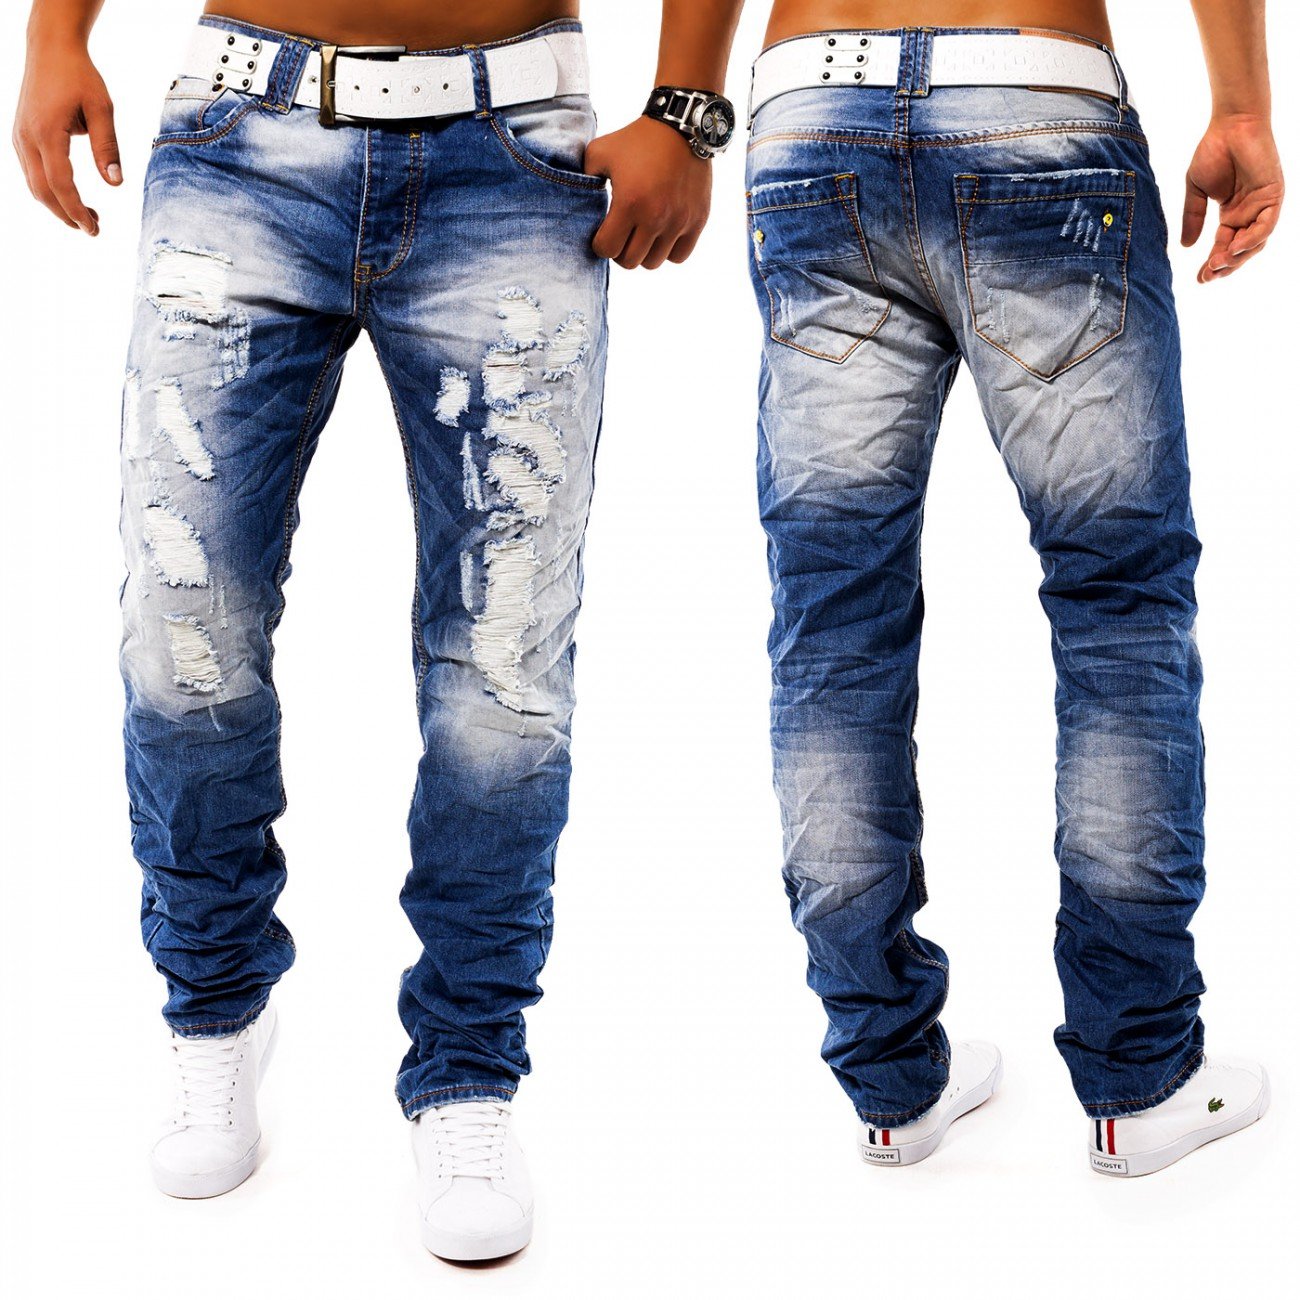 men 39 s jeans pants toruk destroyed denim distressed slim fit ripped blue ebay. Black Bedroom Furniture Sets. Home Design Ideas